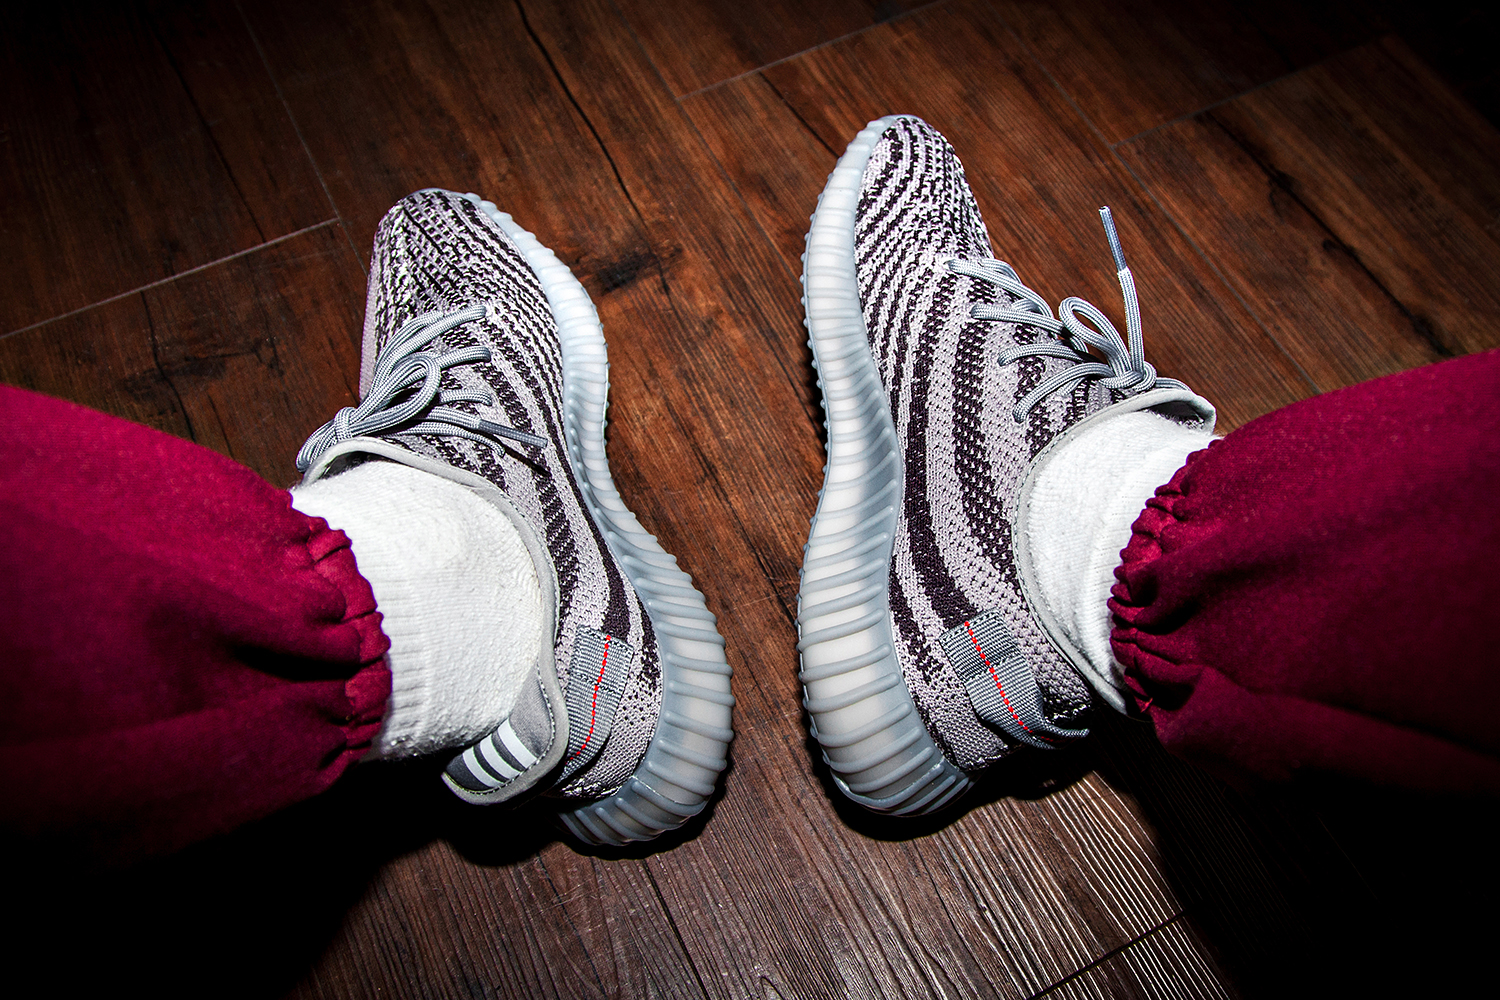 photography by kev foster for philip browne_yeezy 350 v2 grey_3a.jpg